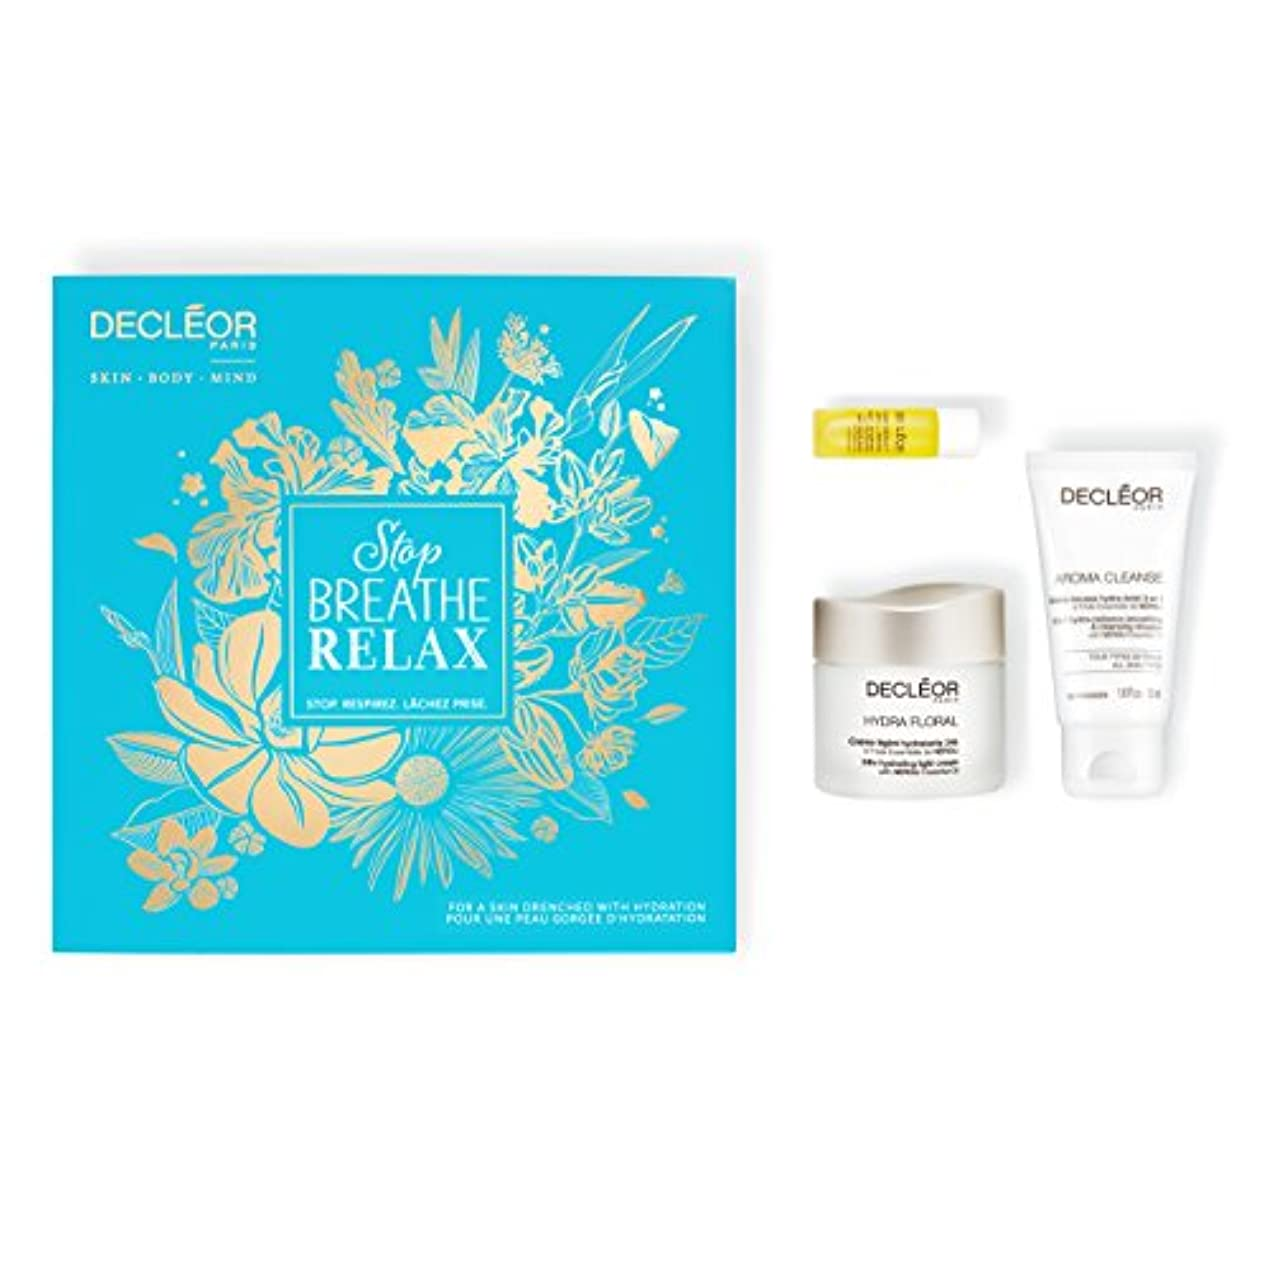 ダンプ小競り合い厚いデクレオール Stop.Breathe.Relax Holiday Kit:Cleansing Mousse 50ml+ Hydrating Oil Serum 5ml+ 24hr Hydrating Light Cream...